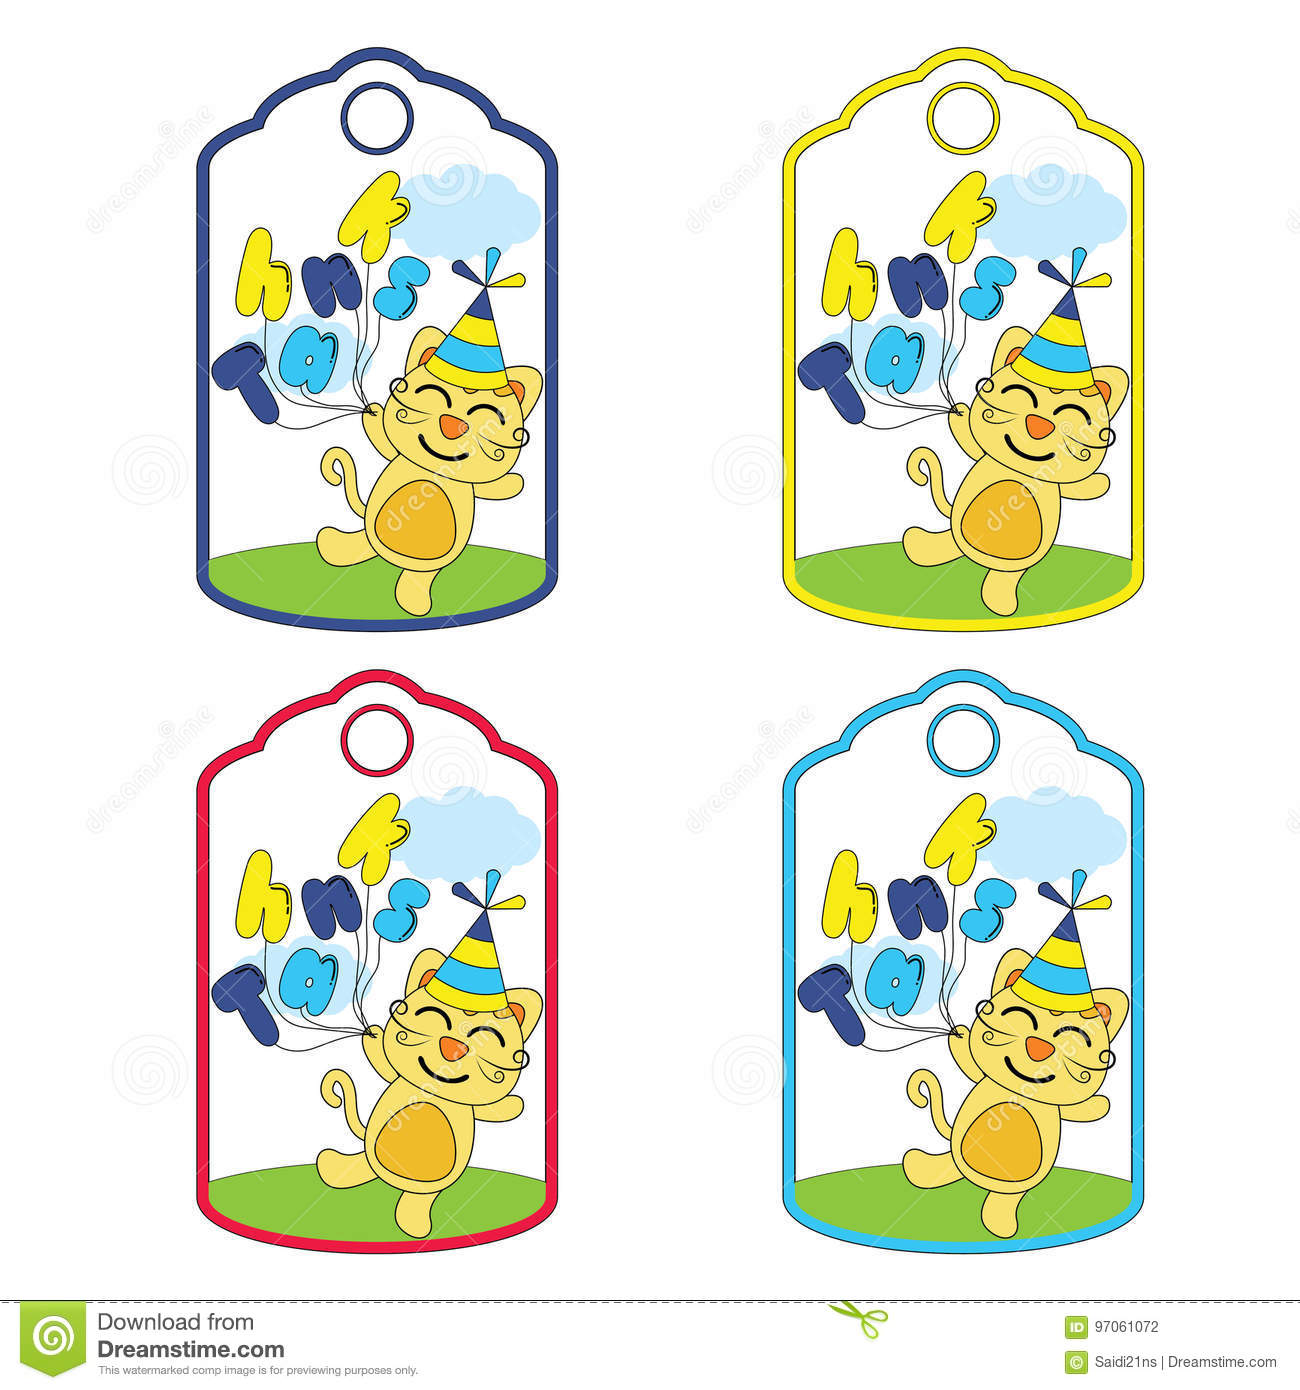 Cute birthday gift tags vector cartoon with cute cat brings balloons suitable for birthday tags design